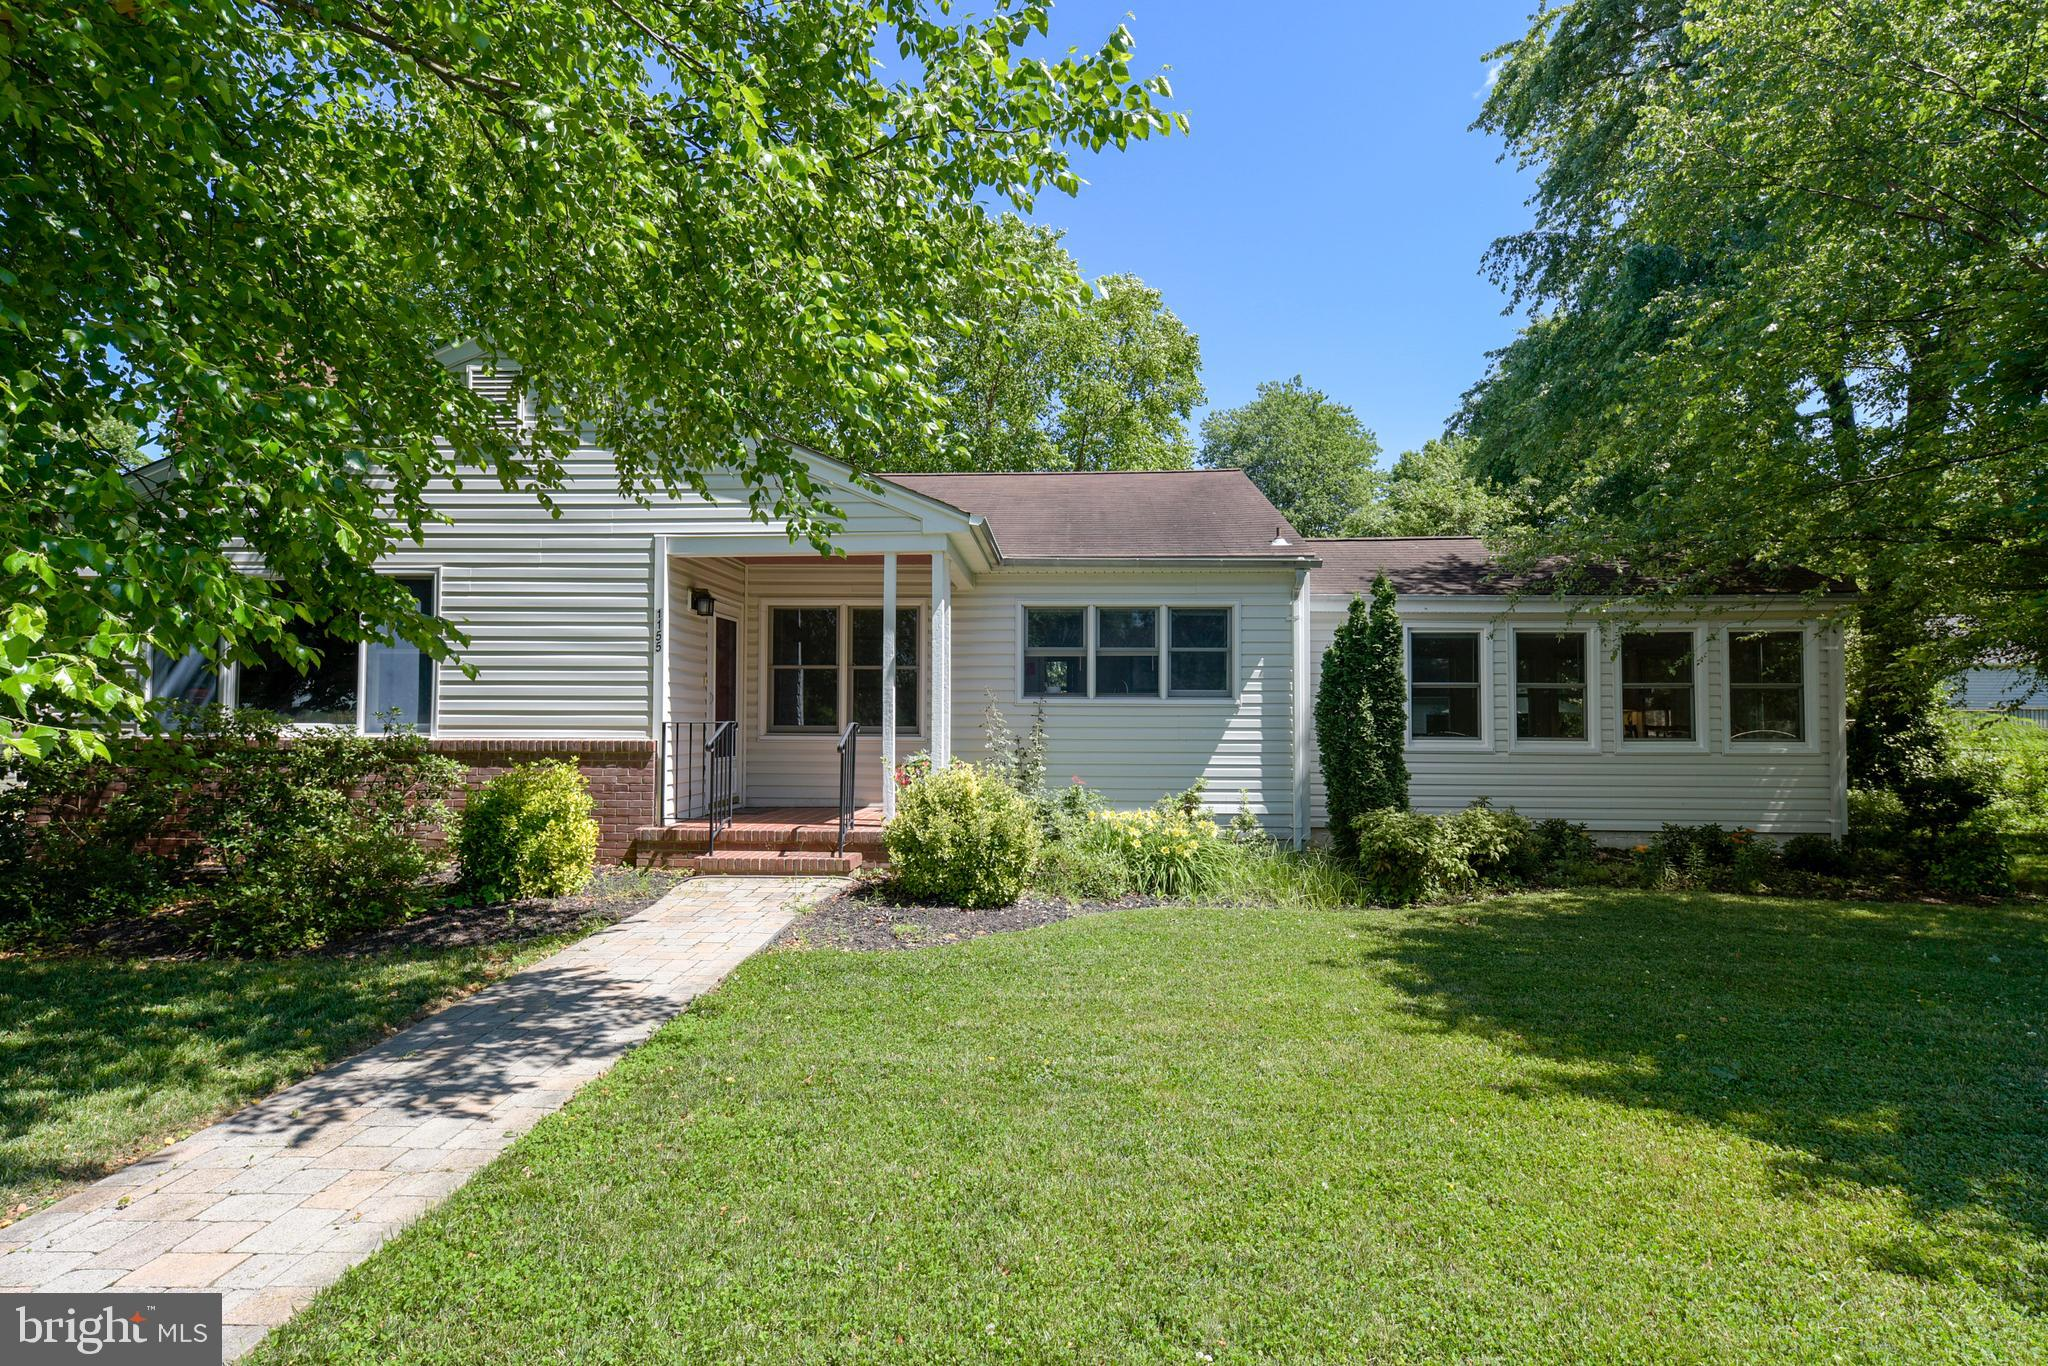 1155 Tyler Ave, Annapolis, MD, 21403